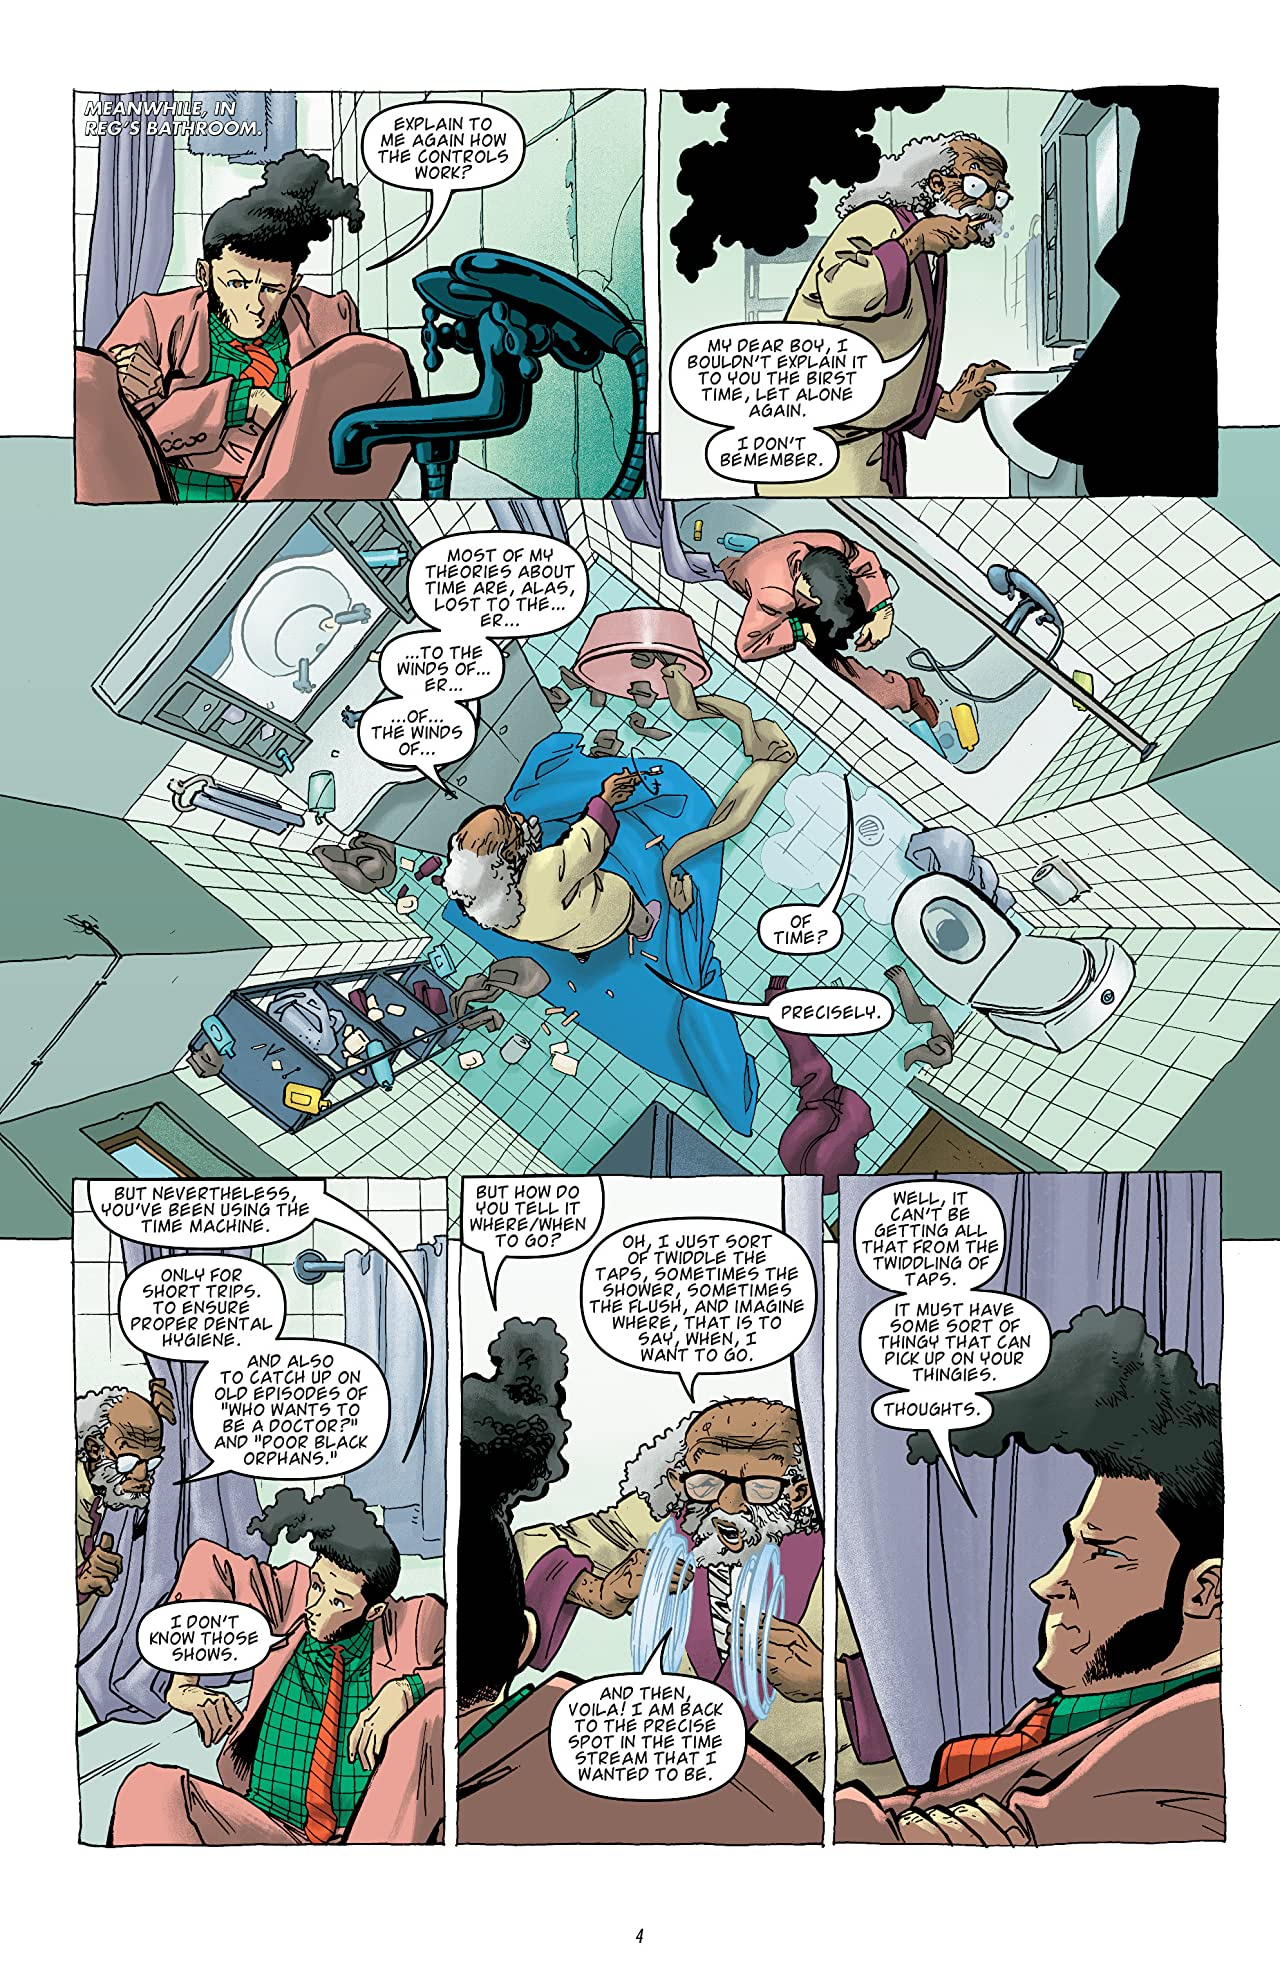 Dirk Gently: The Salmon of Doubt #2